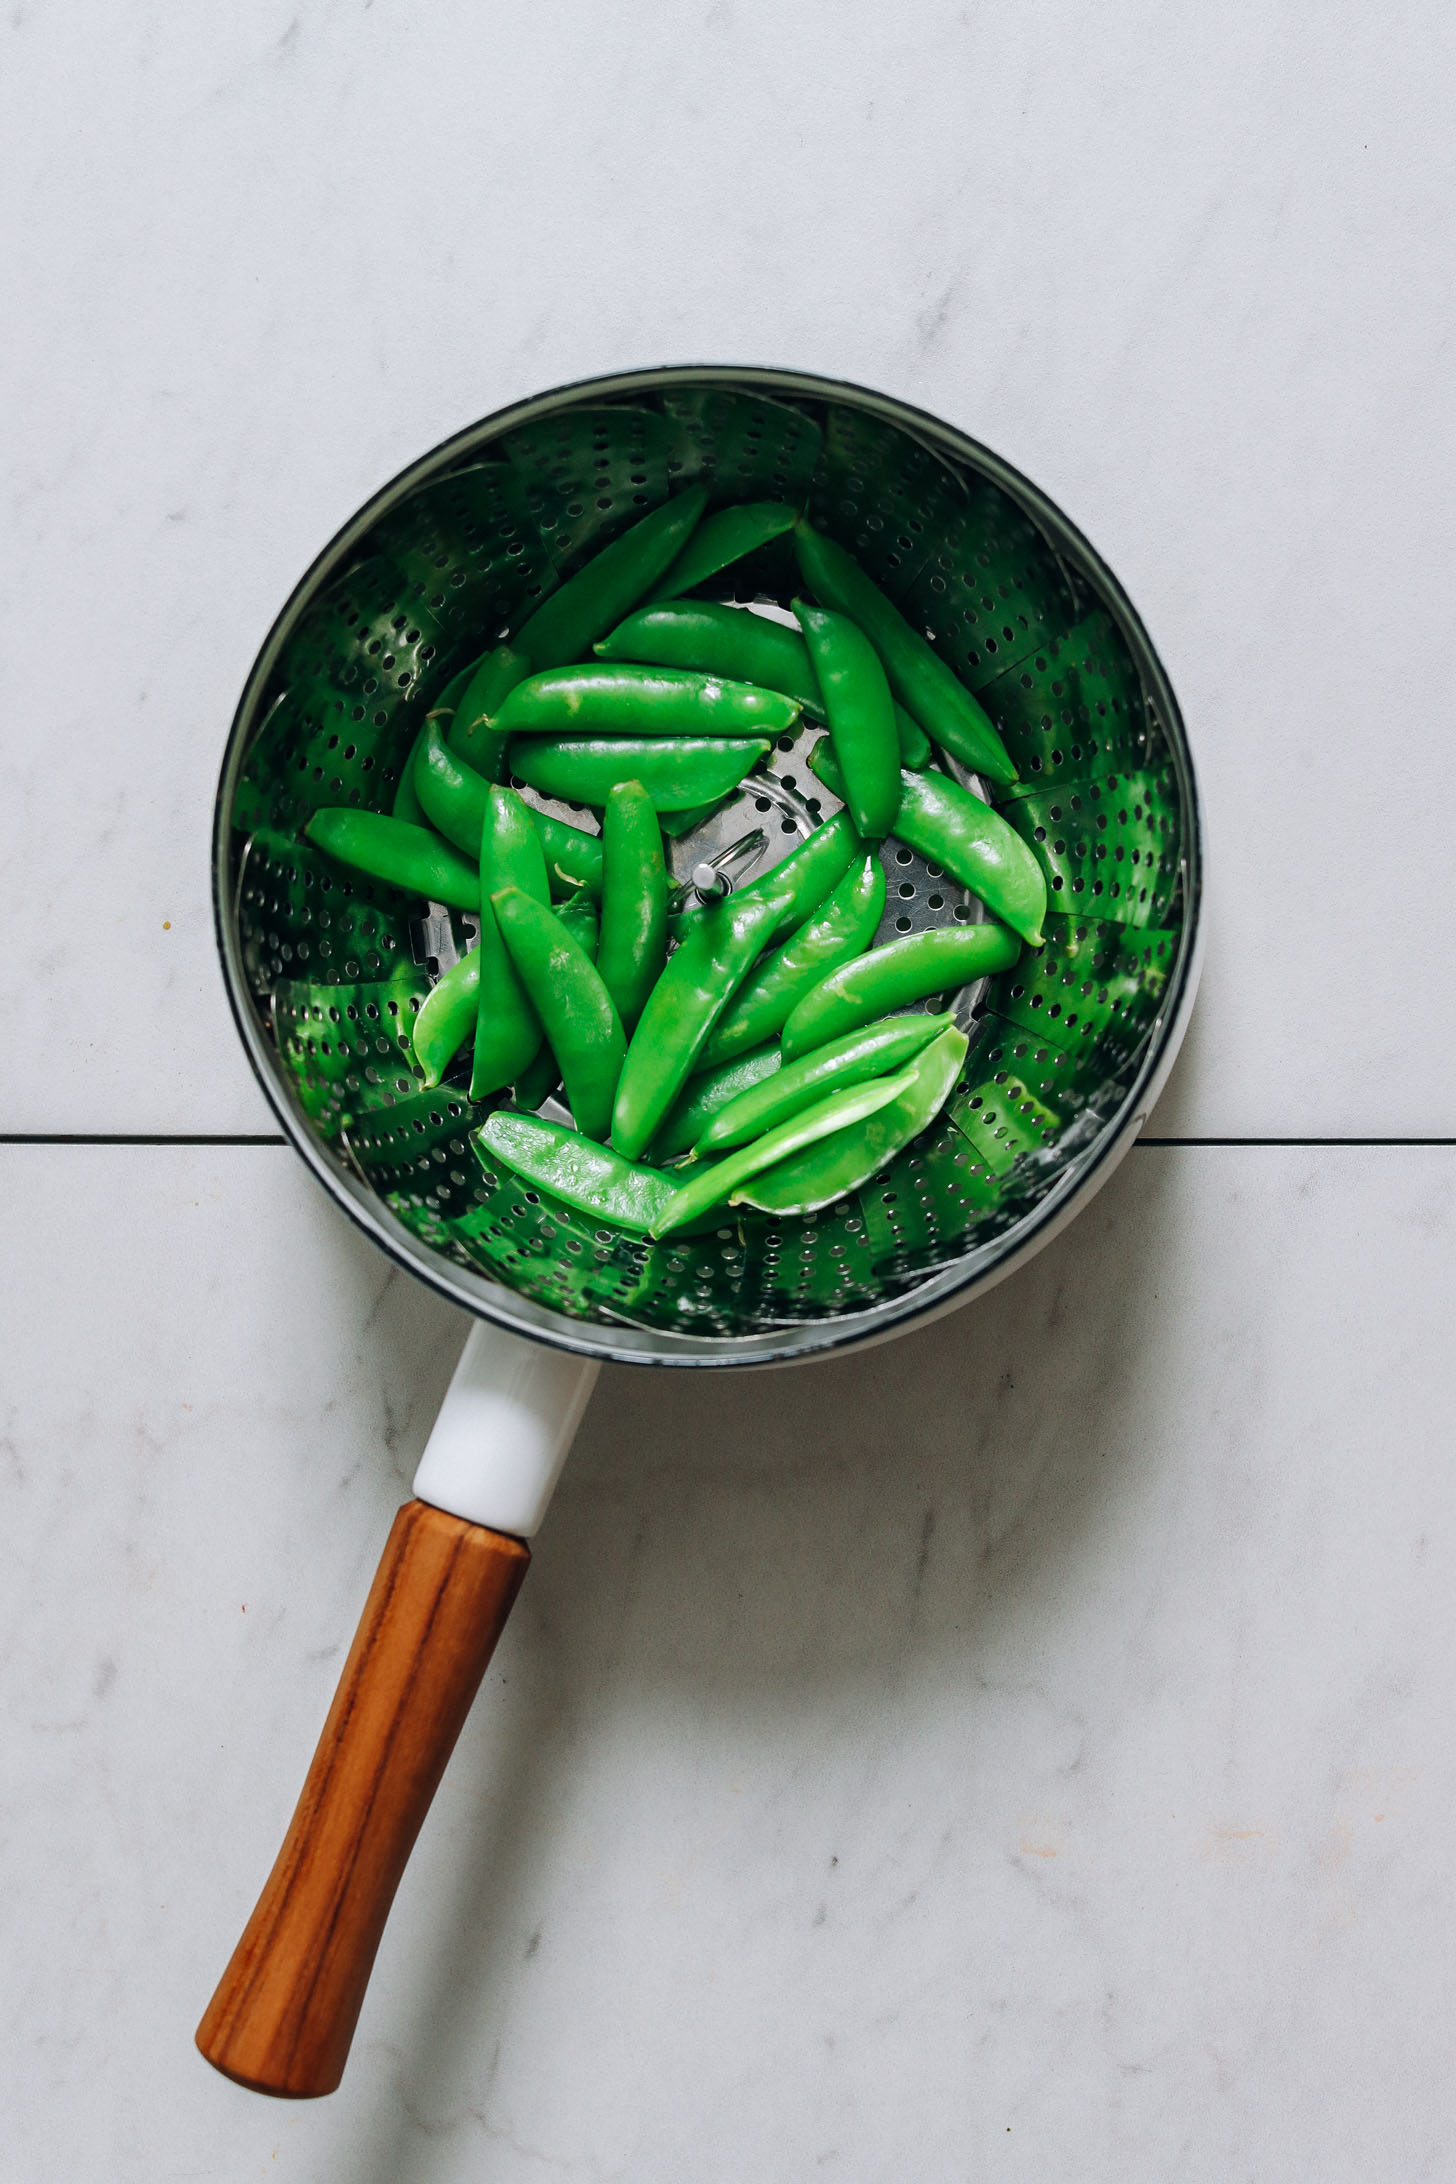 Steaming snow peas in a small saucepan